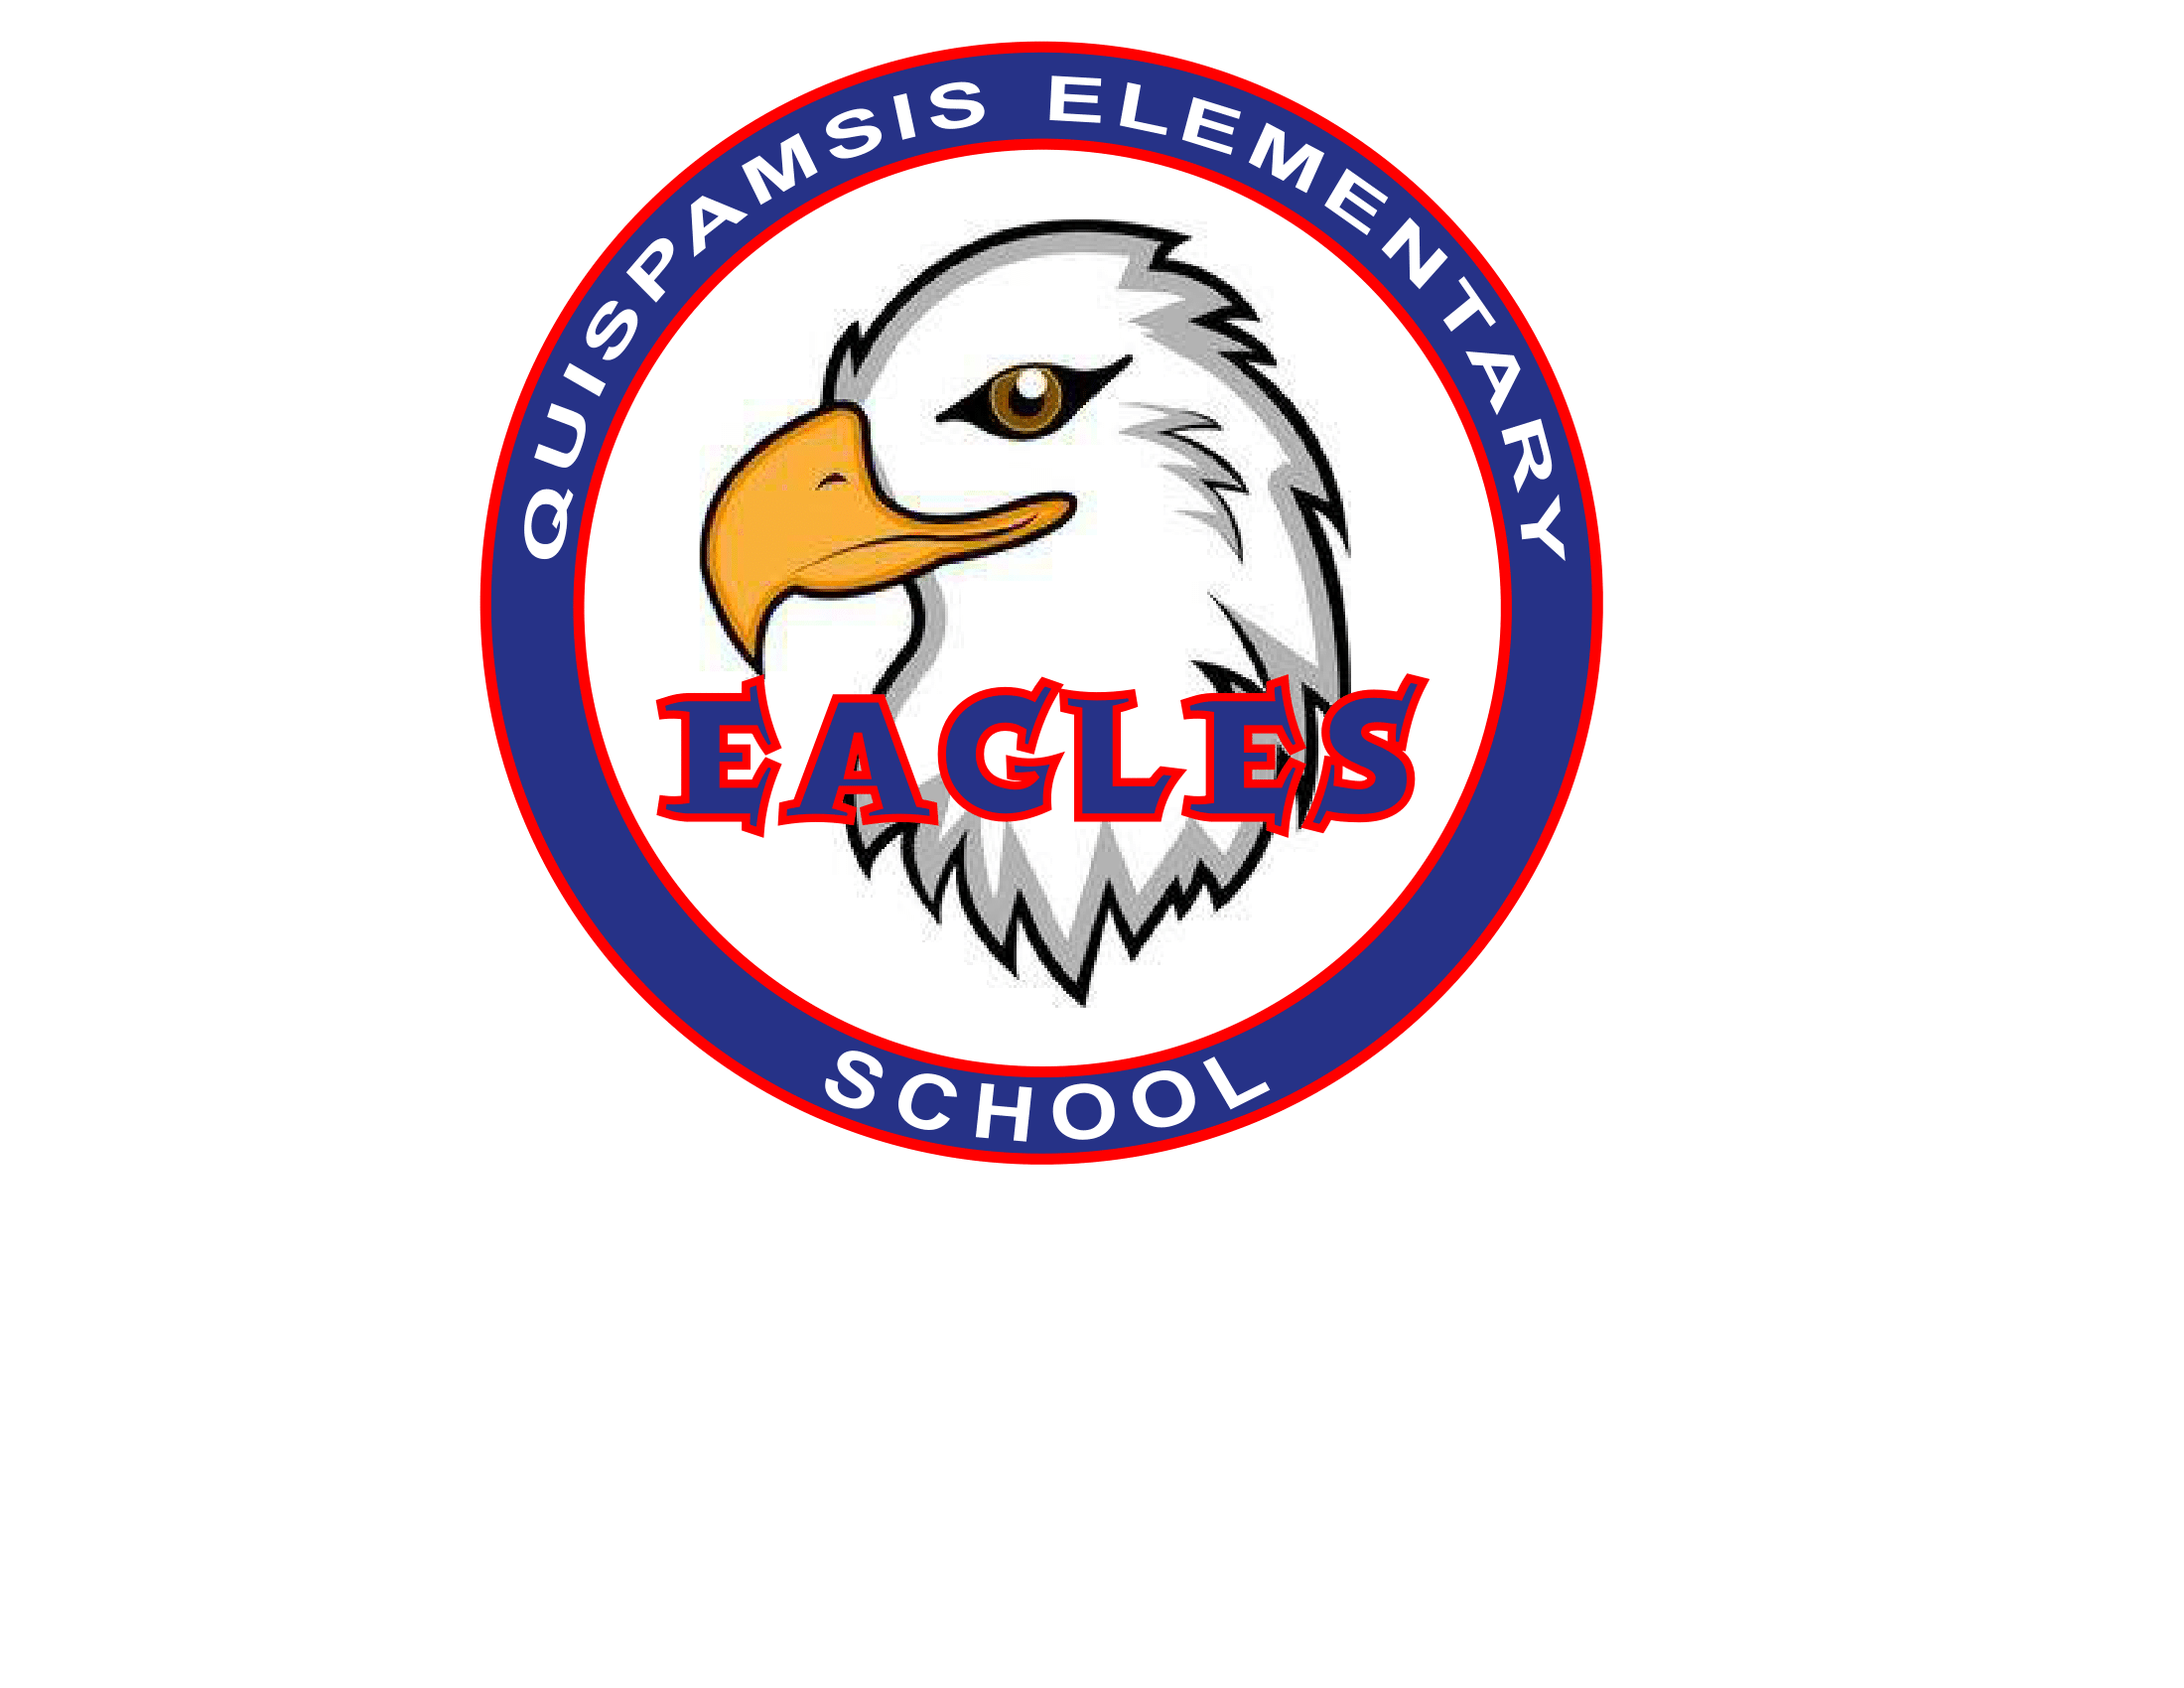 2nd Annual QES Eagles 5Km, 3Km, and 1Km Fun Run